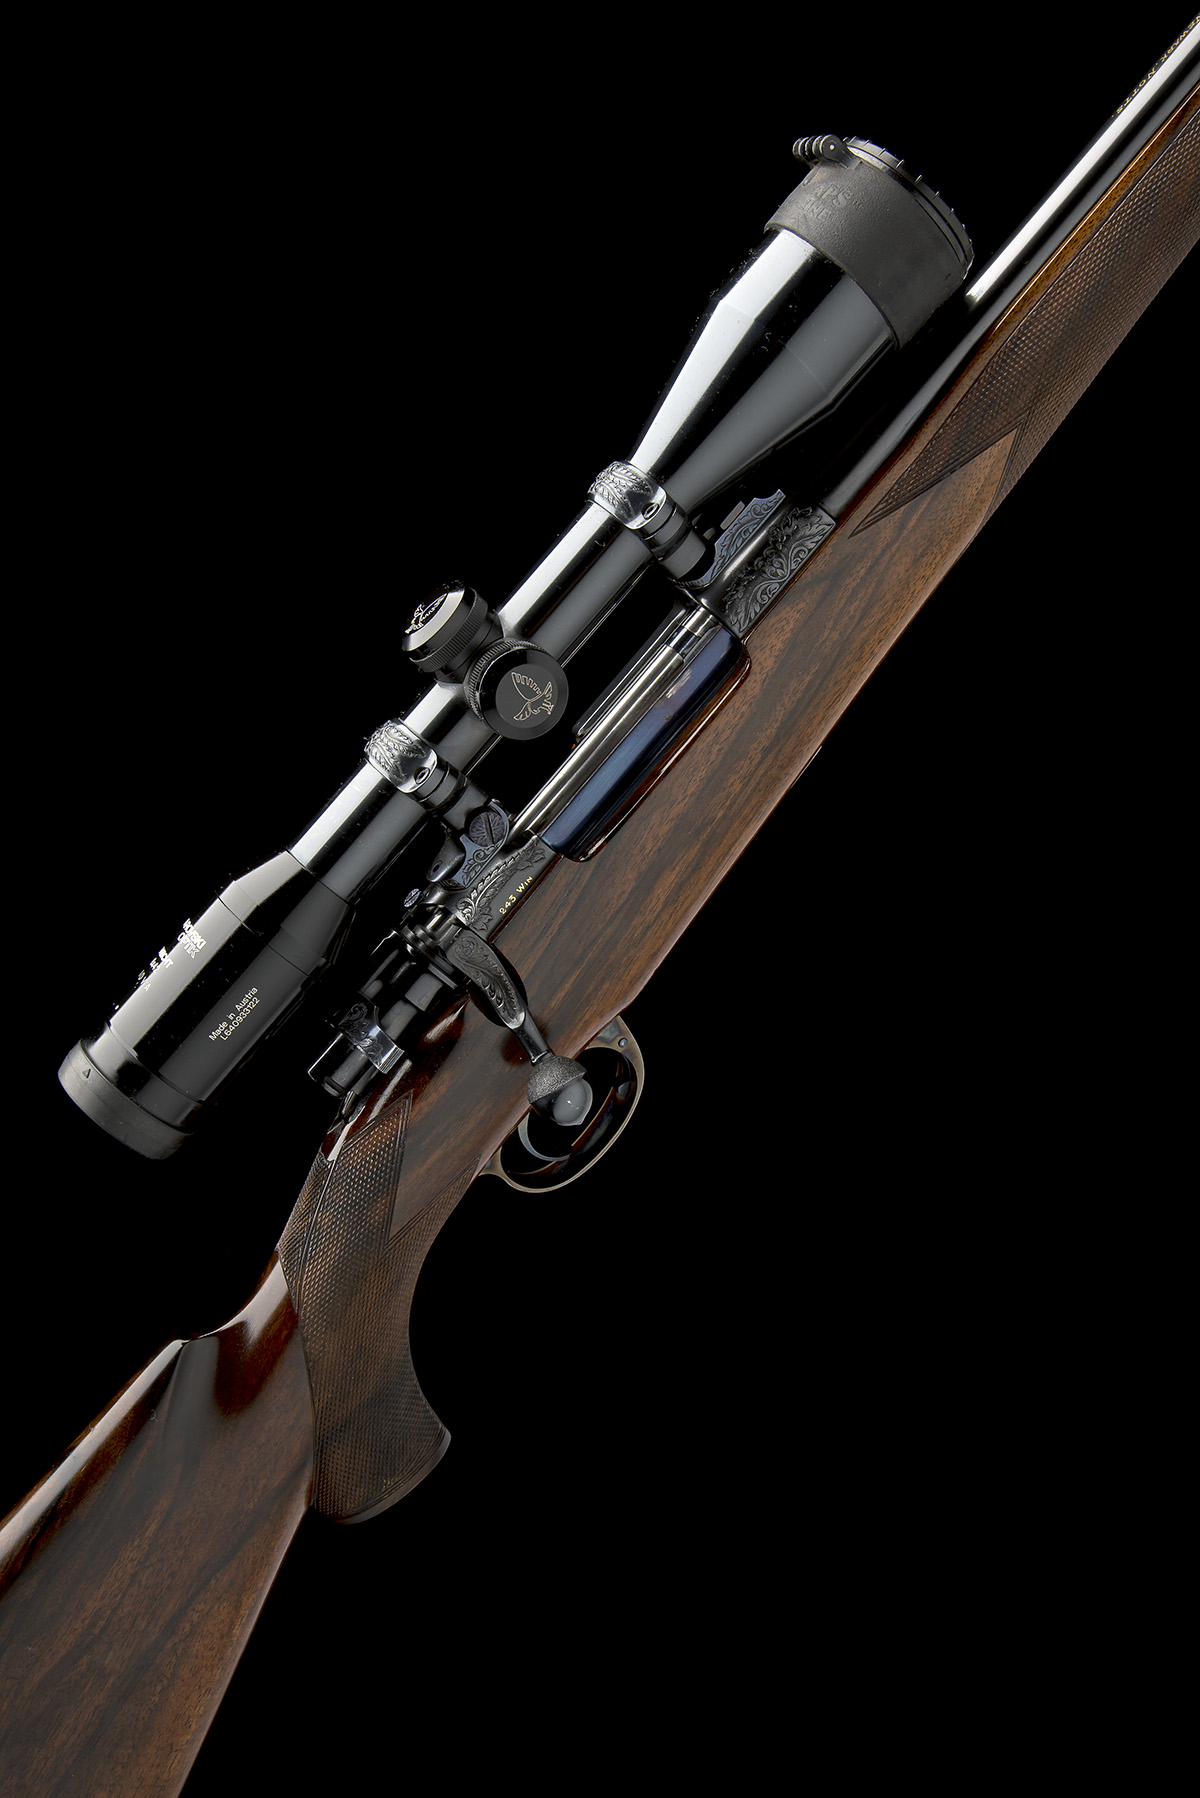 ROY MARTIN A .243 WIN. BOLT-MAGAZINE SPORTING RIFLE, serial no. H0680, circa 1986, 21in. unsighted